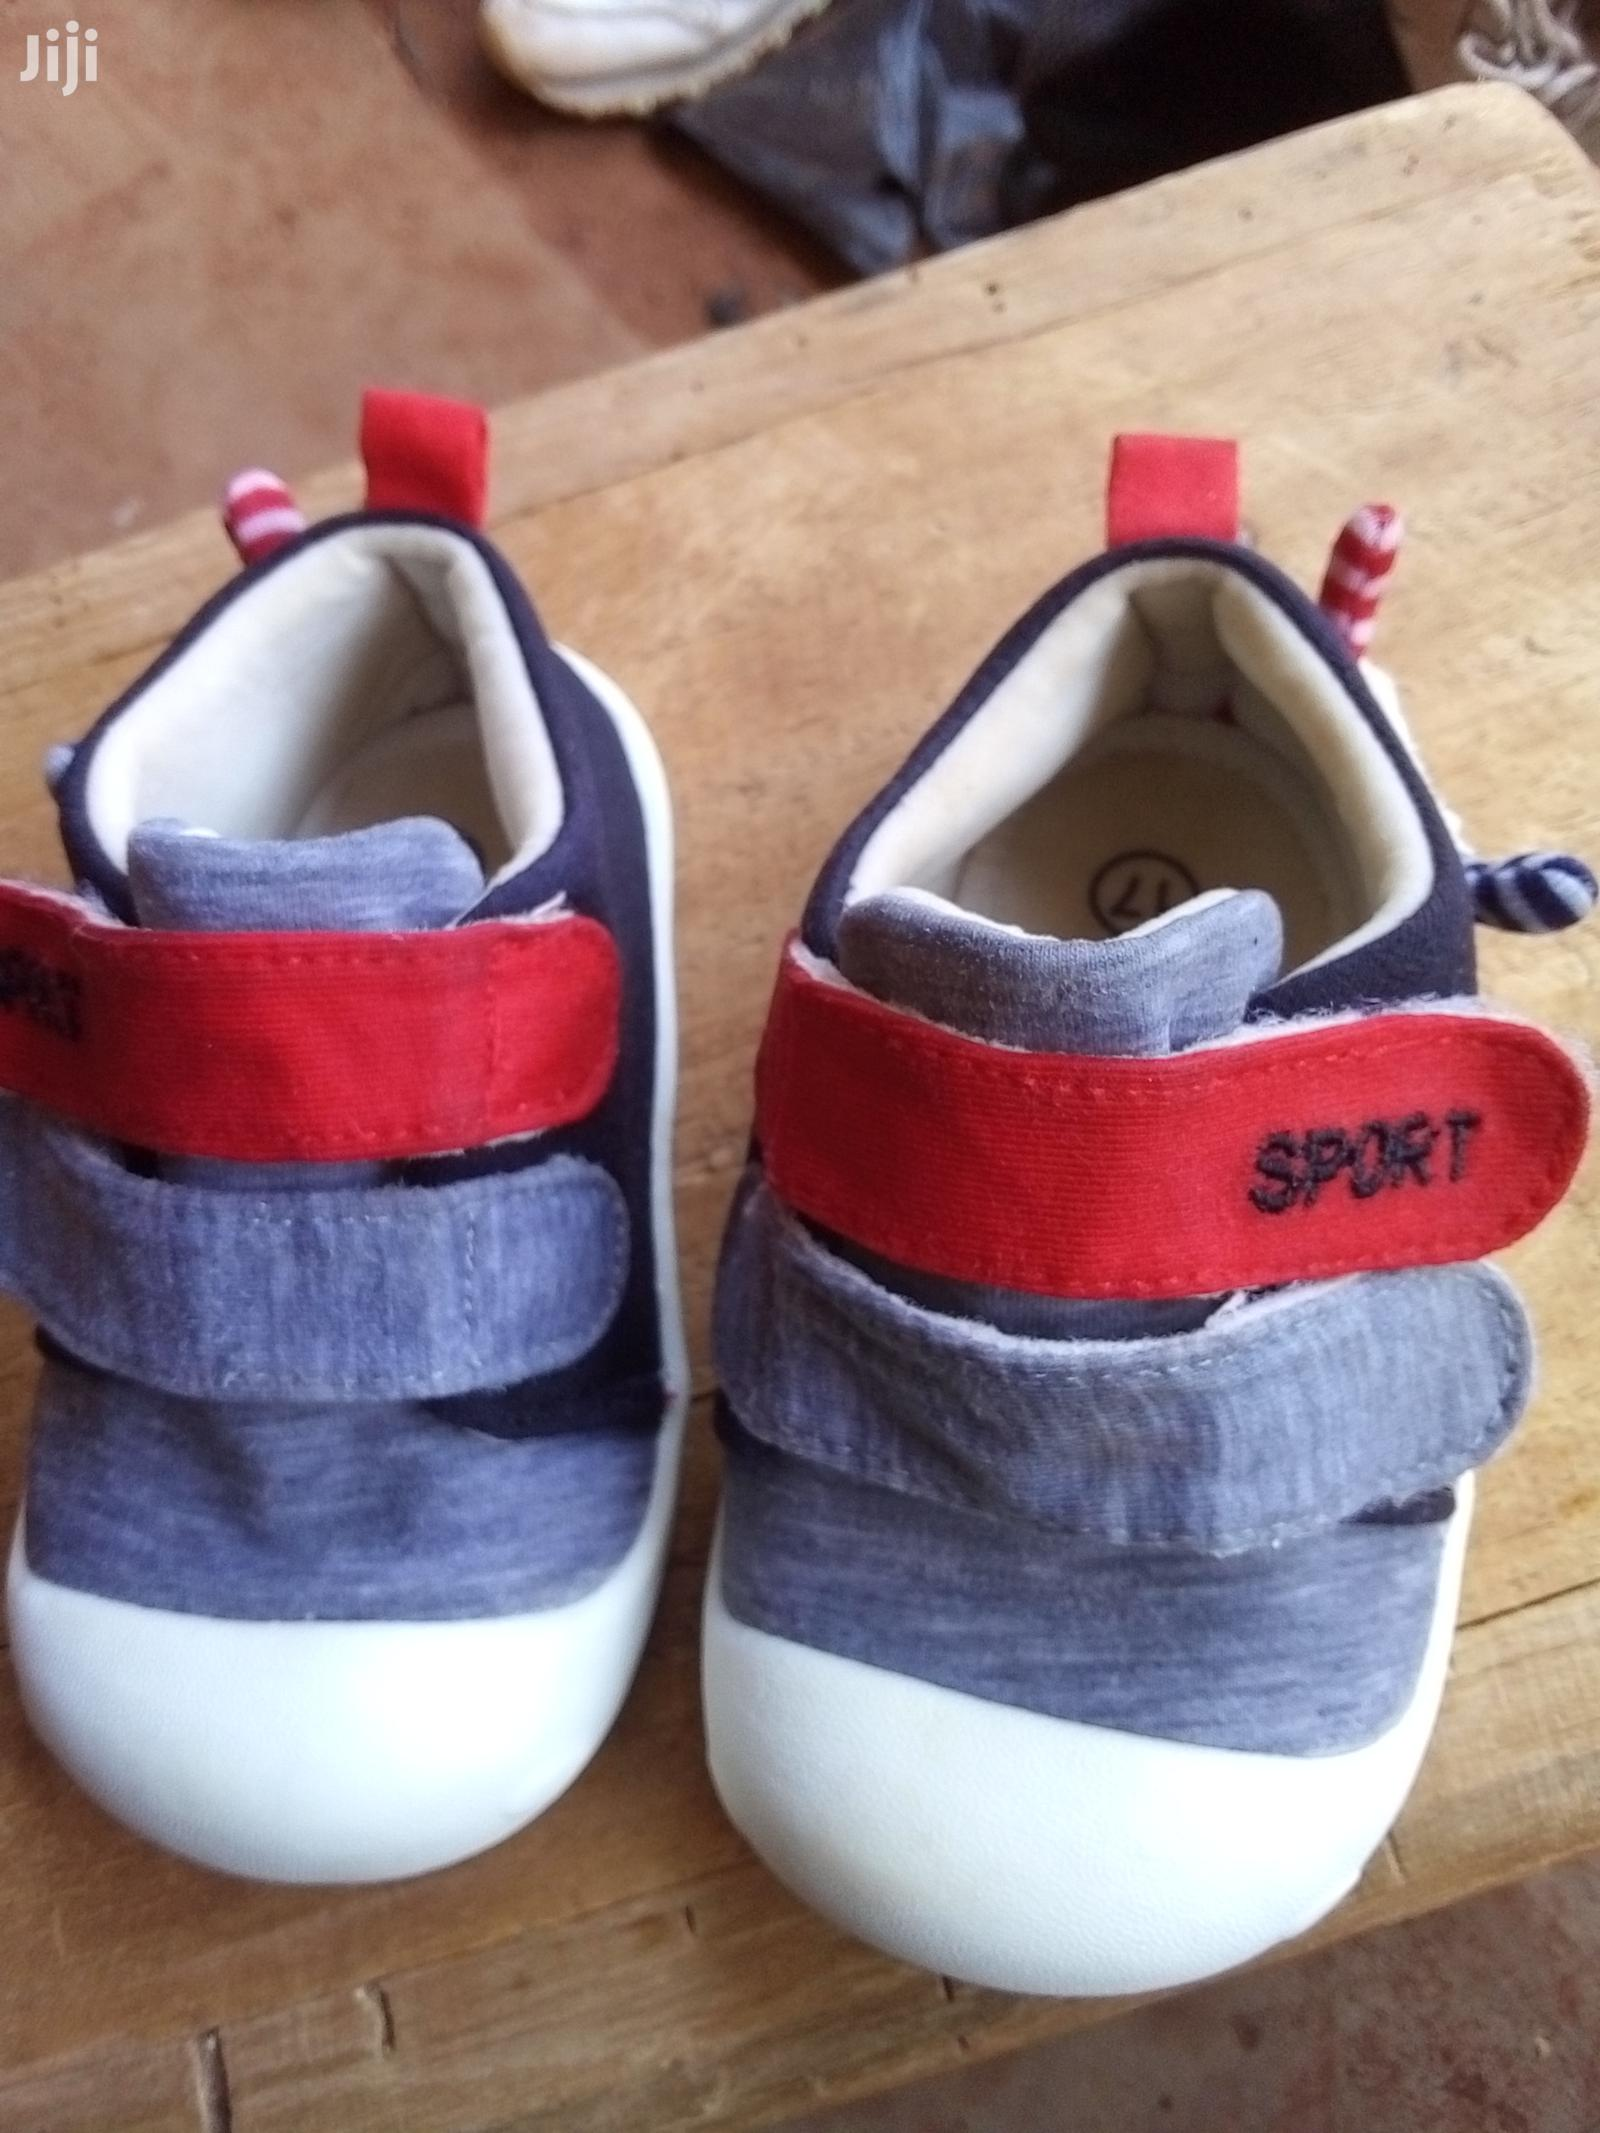 Quality and Affordable Shoes for Kids